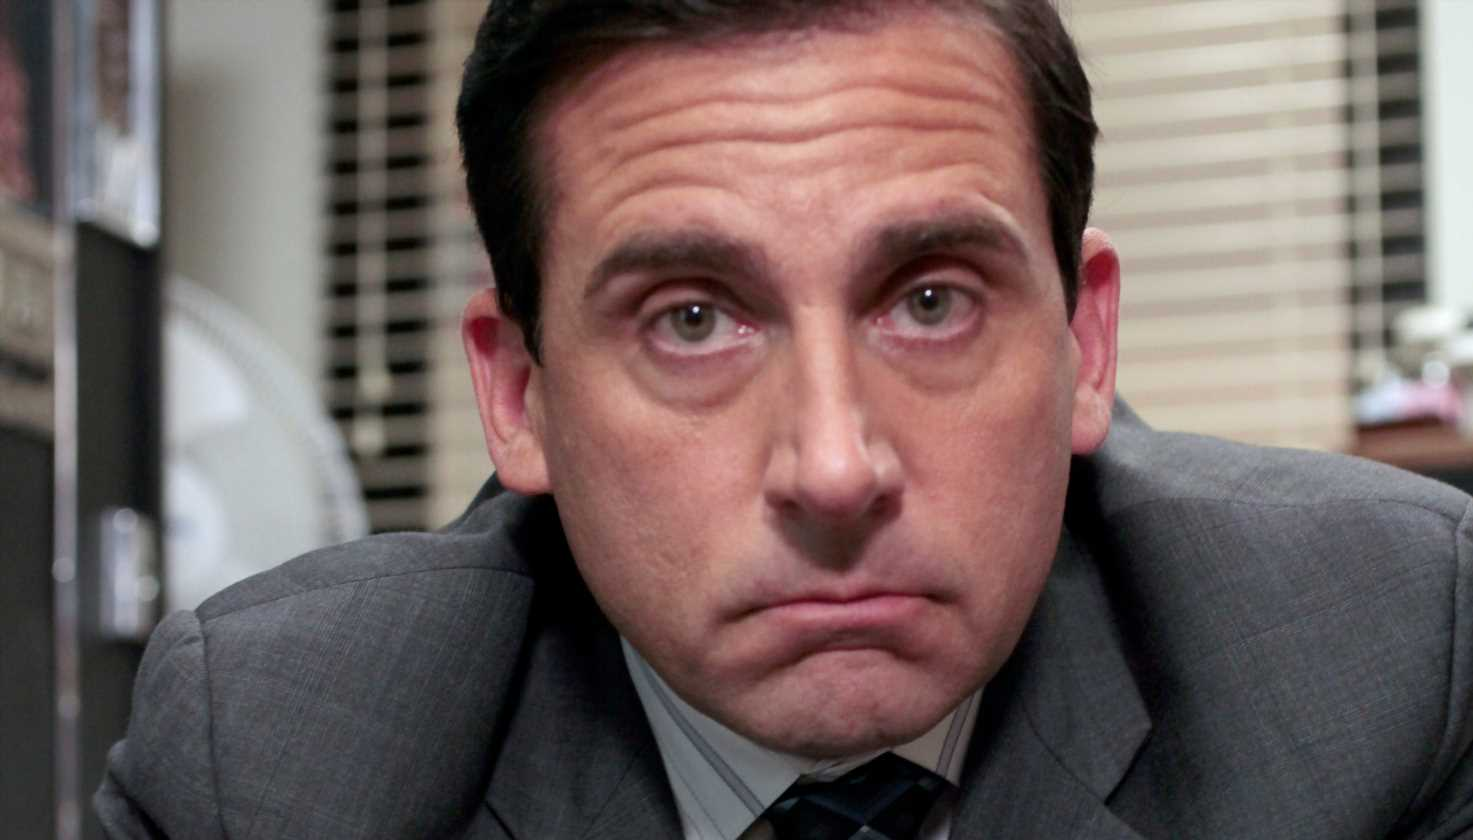 'The Office' is officially leaving Netflix in 2021, heading to NBC streaming service